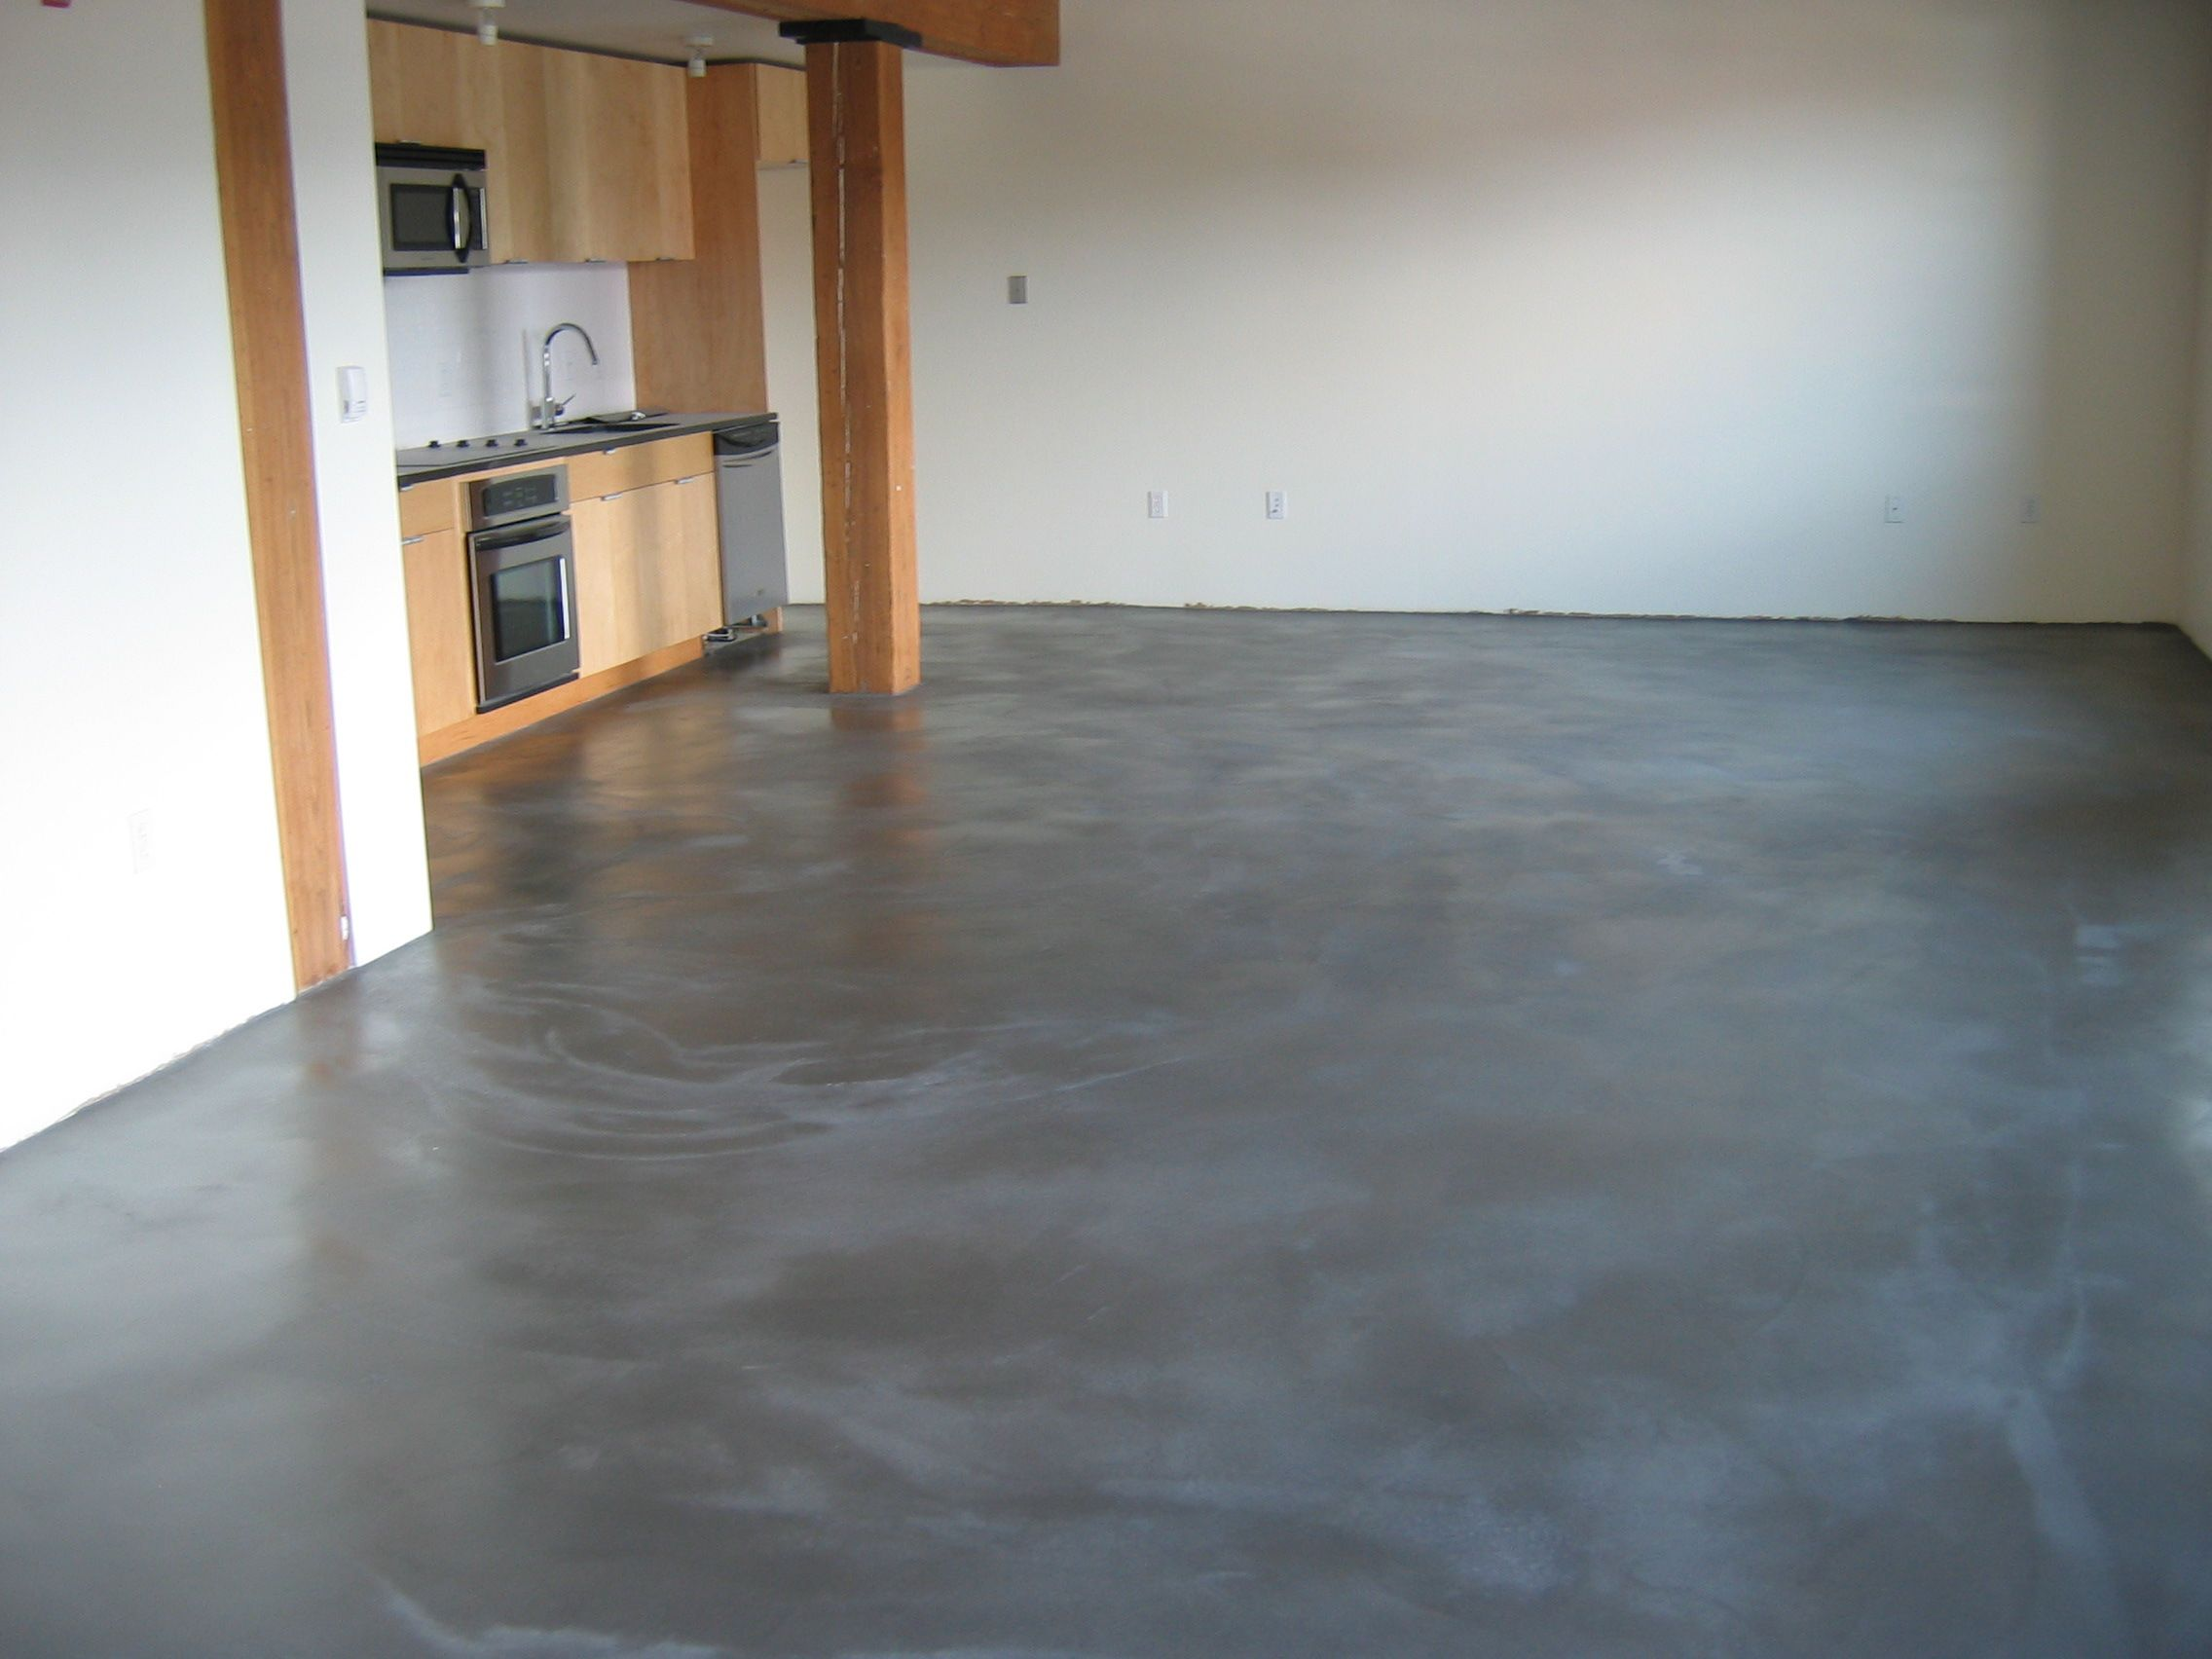 Concrete Floor Kitchen Poured Concrete Floors Concrete Polishing Concrete Floor